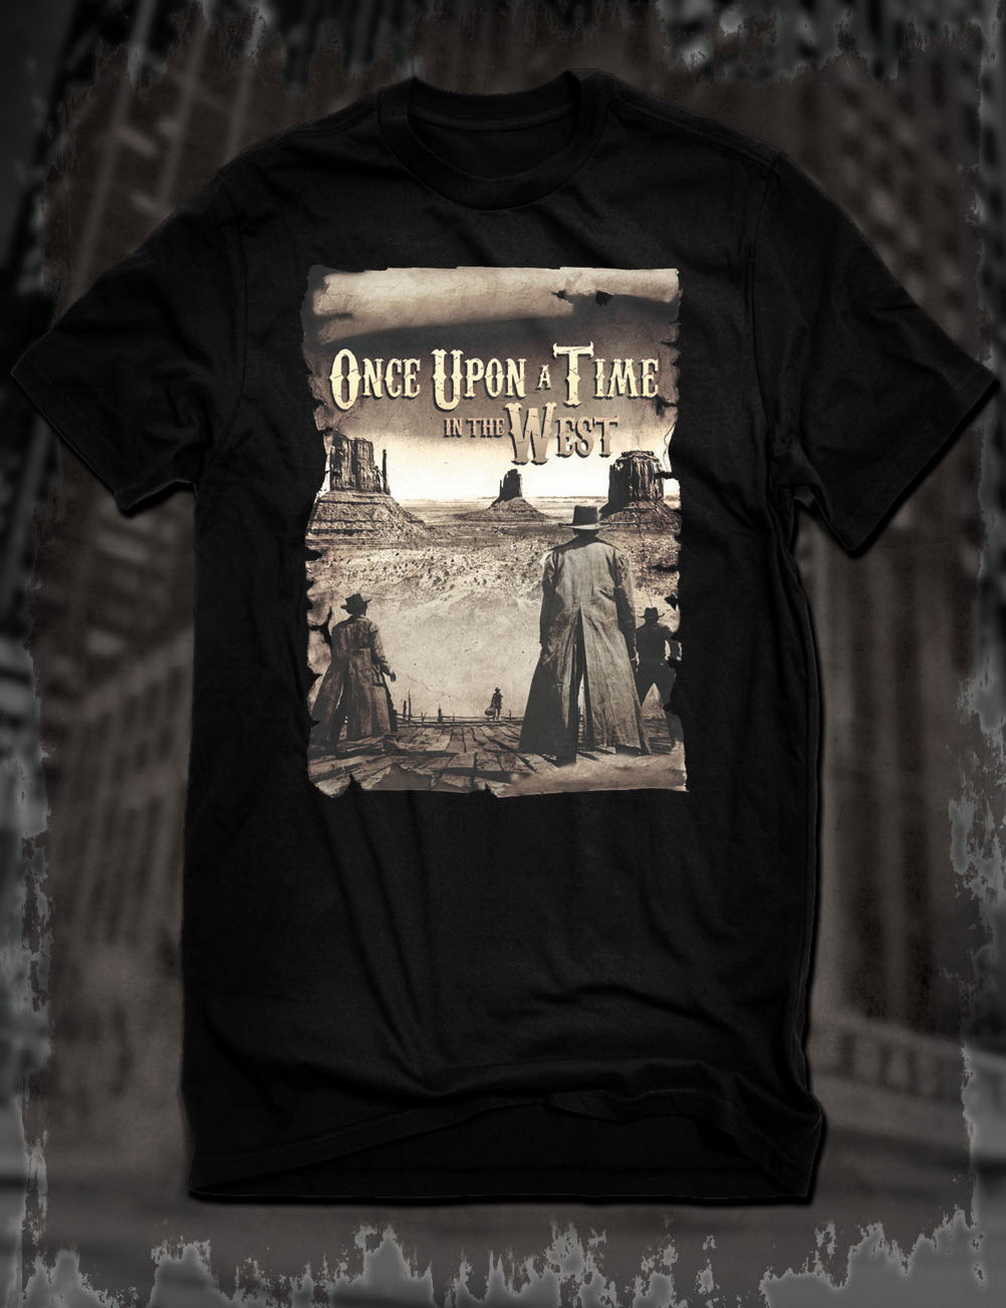 New Black Once Upon A Time In The West Western Movie Tops Tee T Shirt Sergio Leone Film T-Shirt Outfit Casual